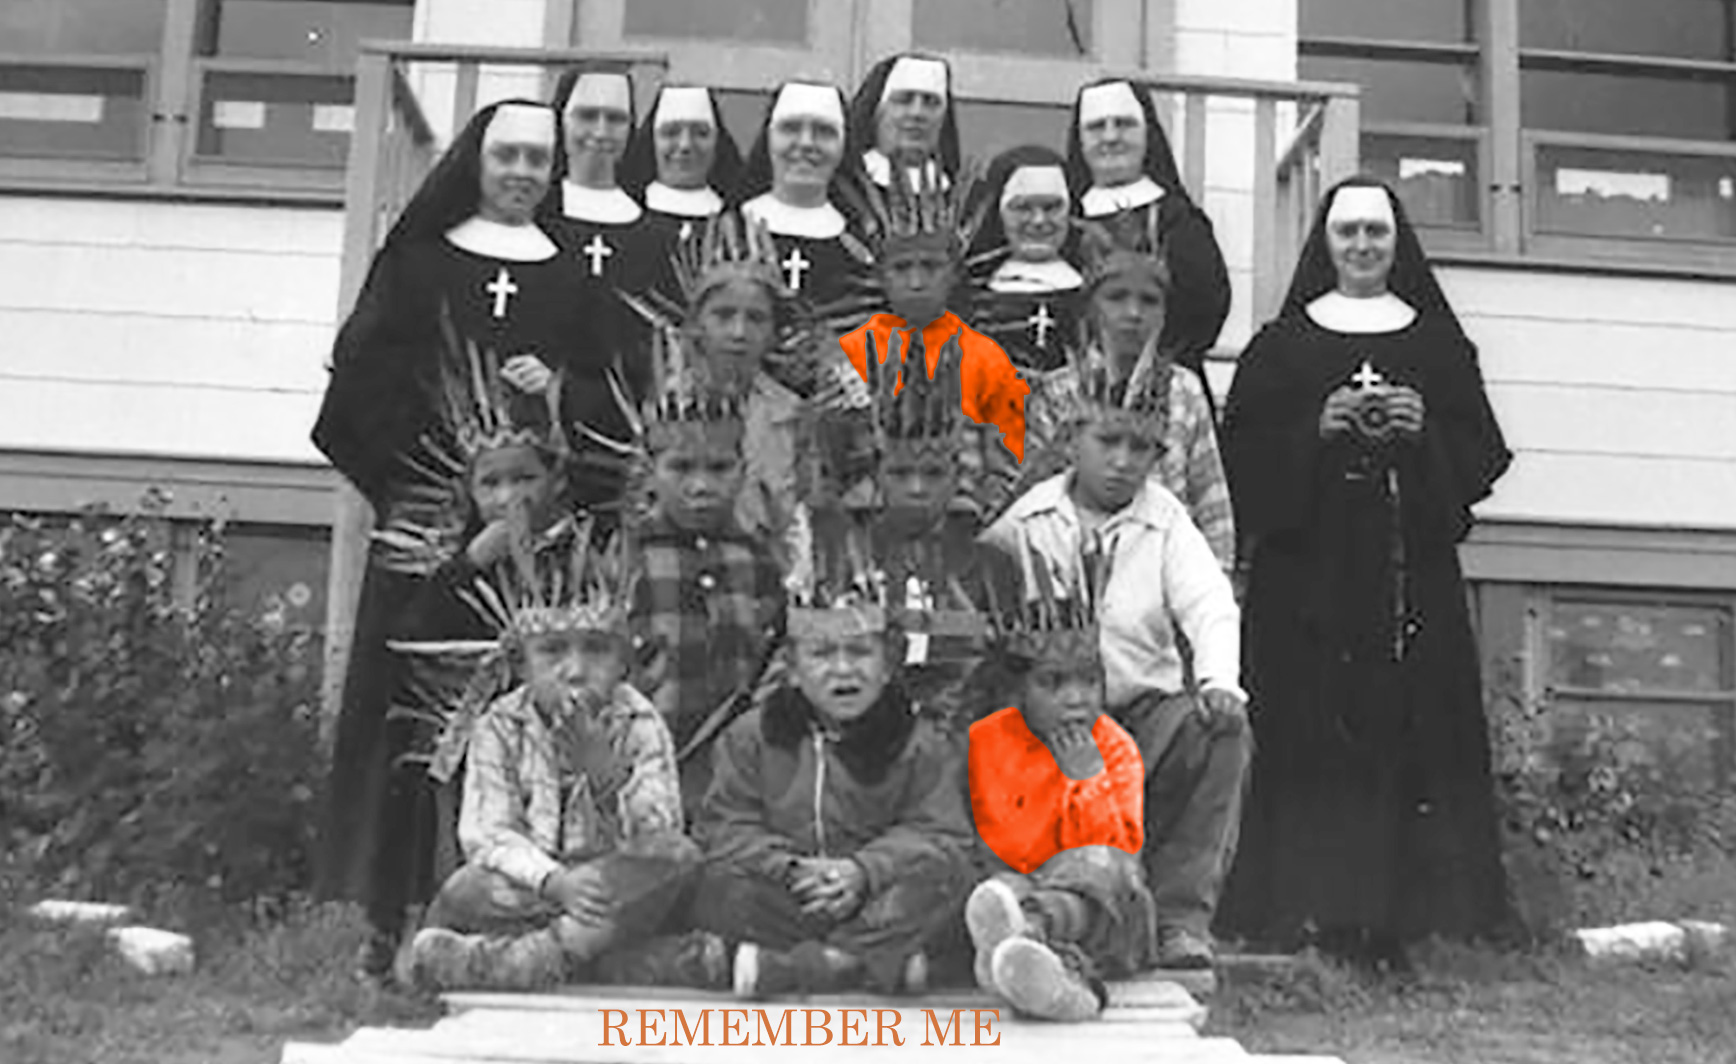 remember me, september 30, orange shirt day, ottawa, pass the feather, indigenous arts collective of canada, residential school, graves, remembrance day